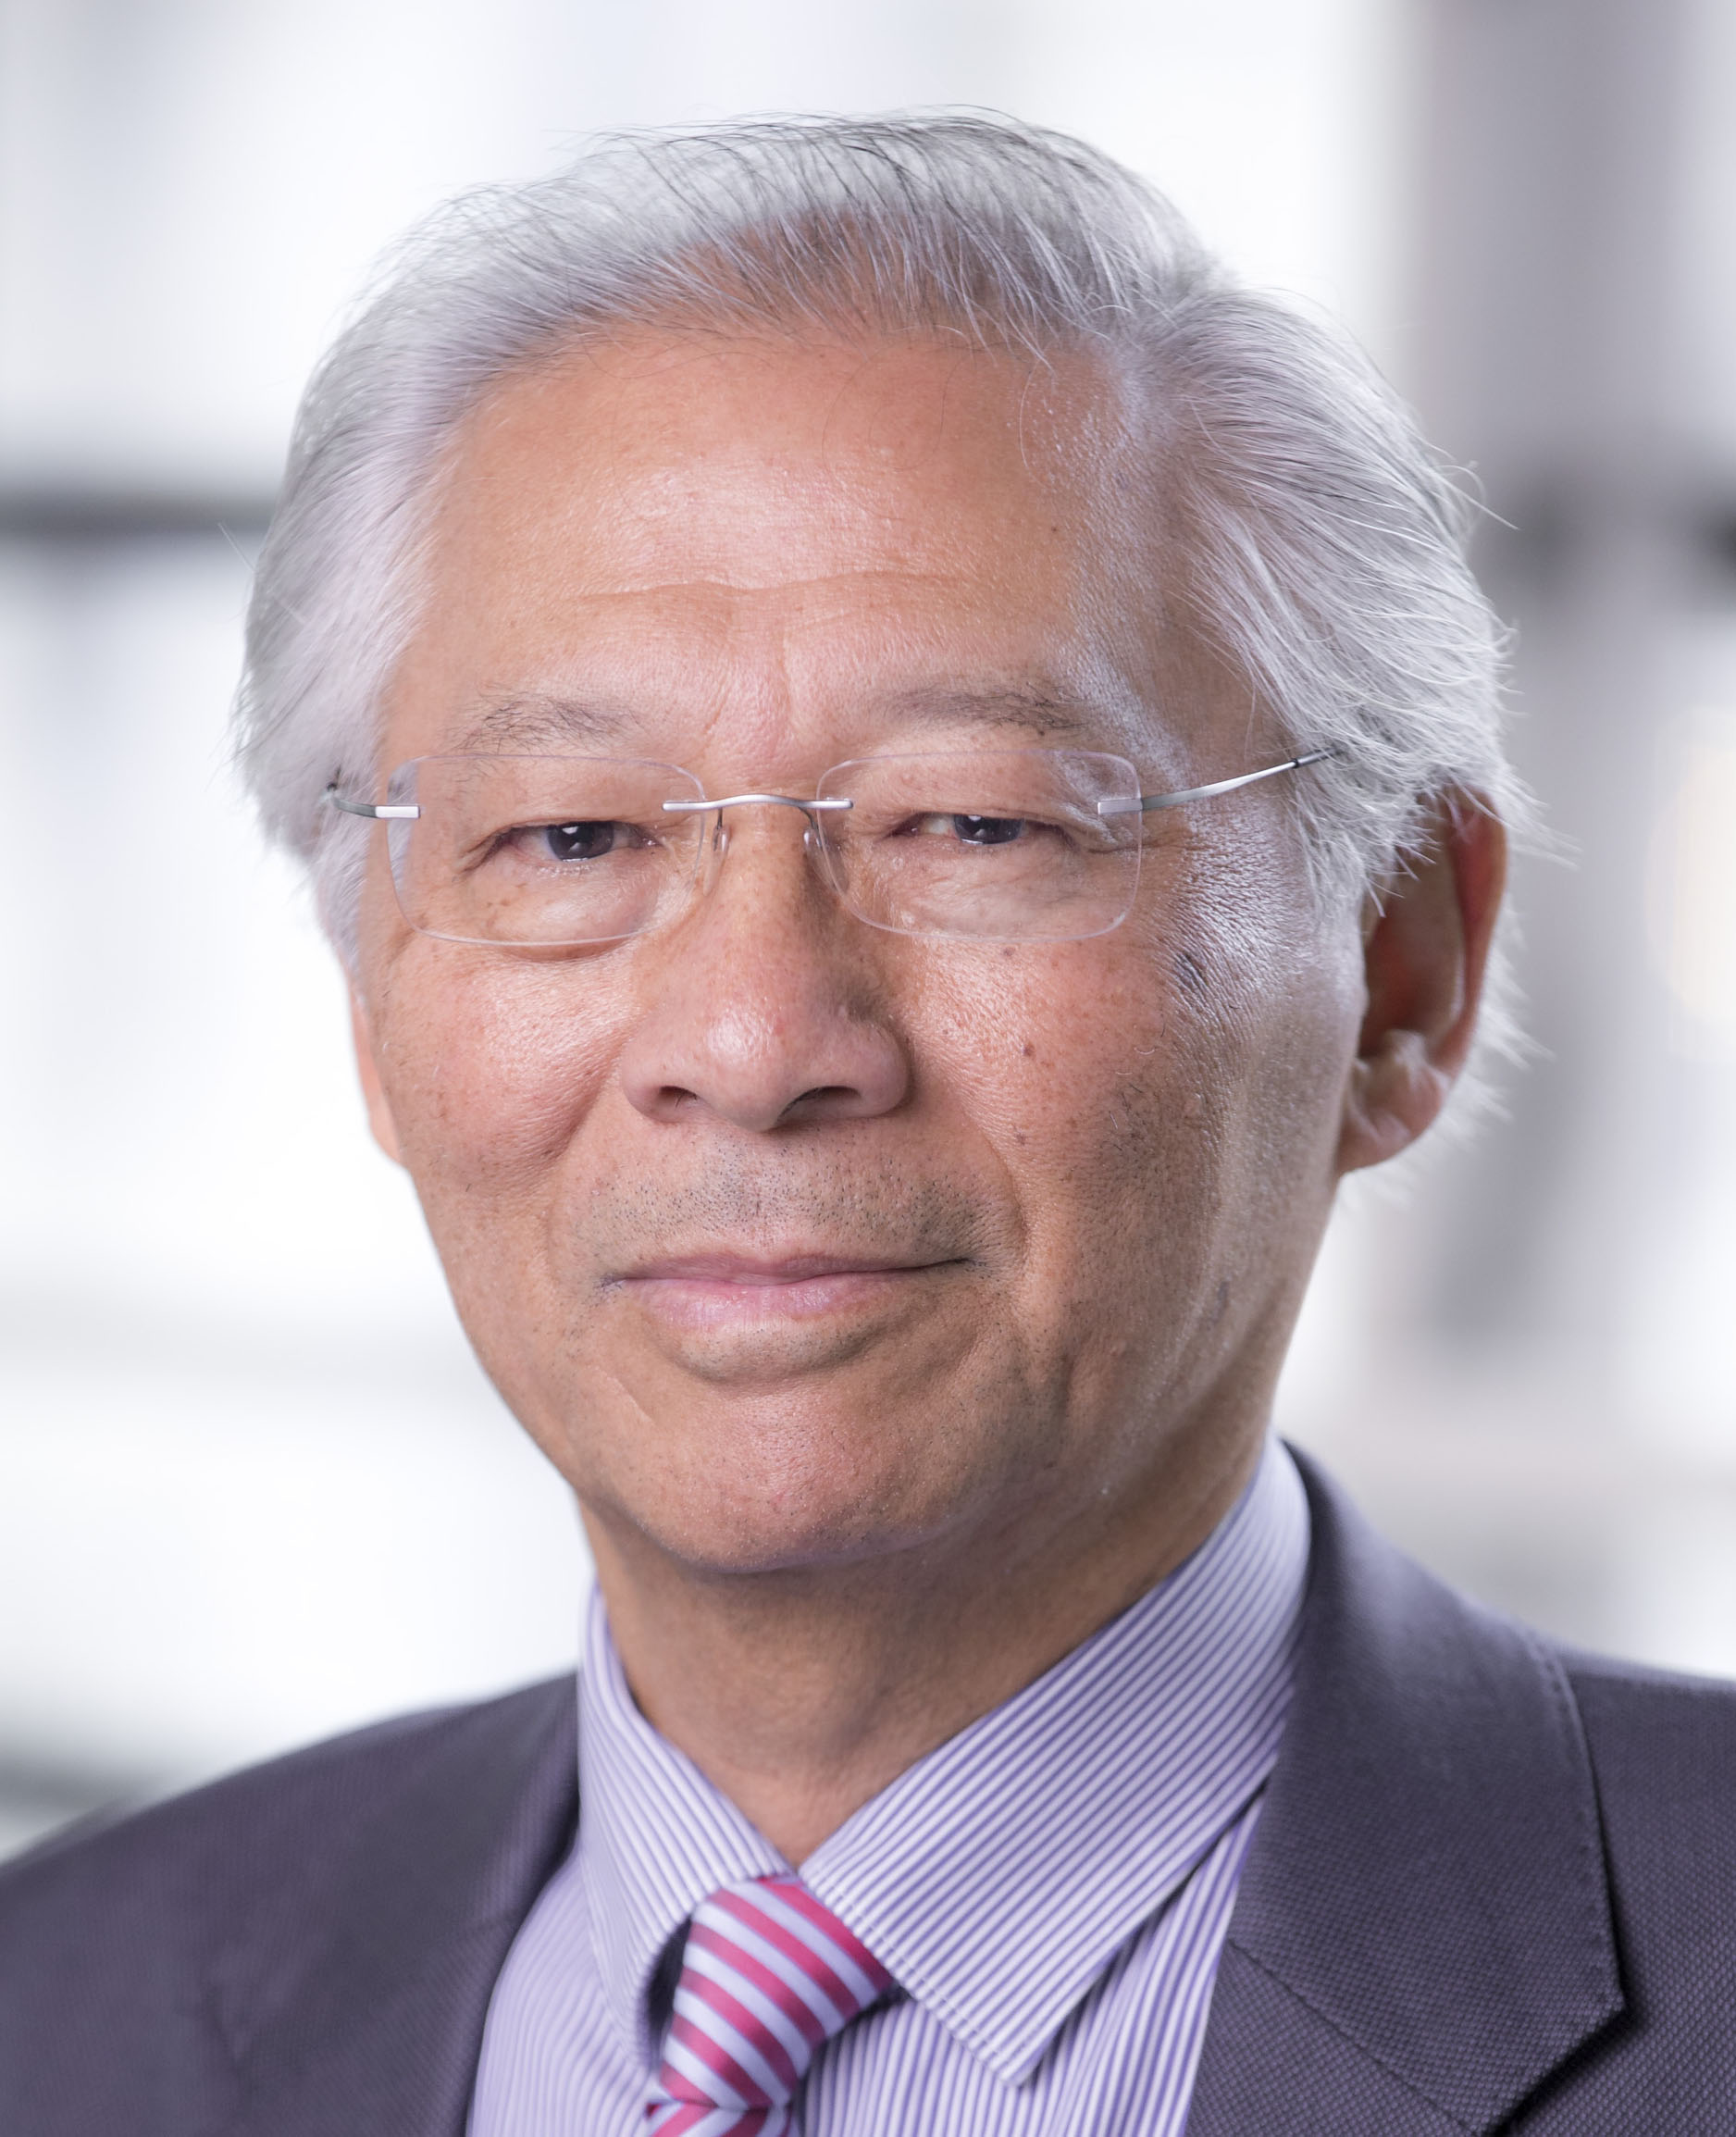 My job in higher ed - George Yip, Imperial College London